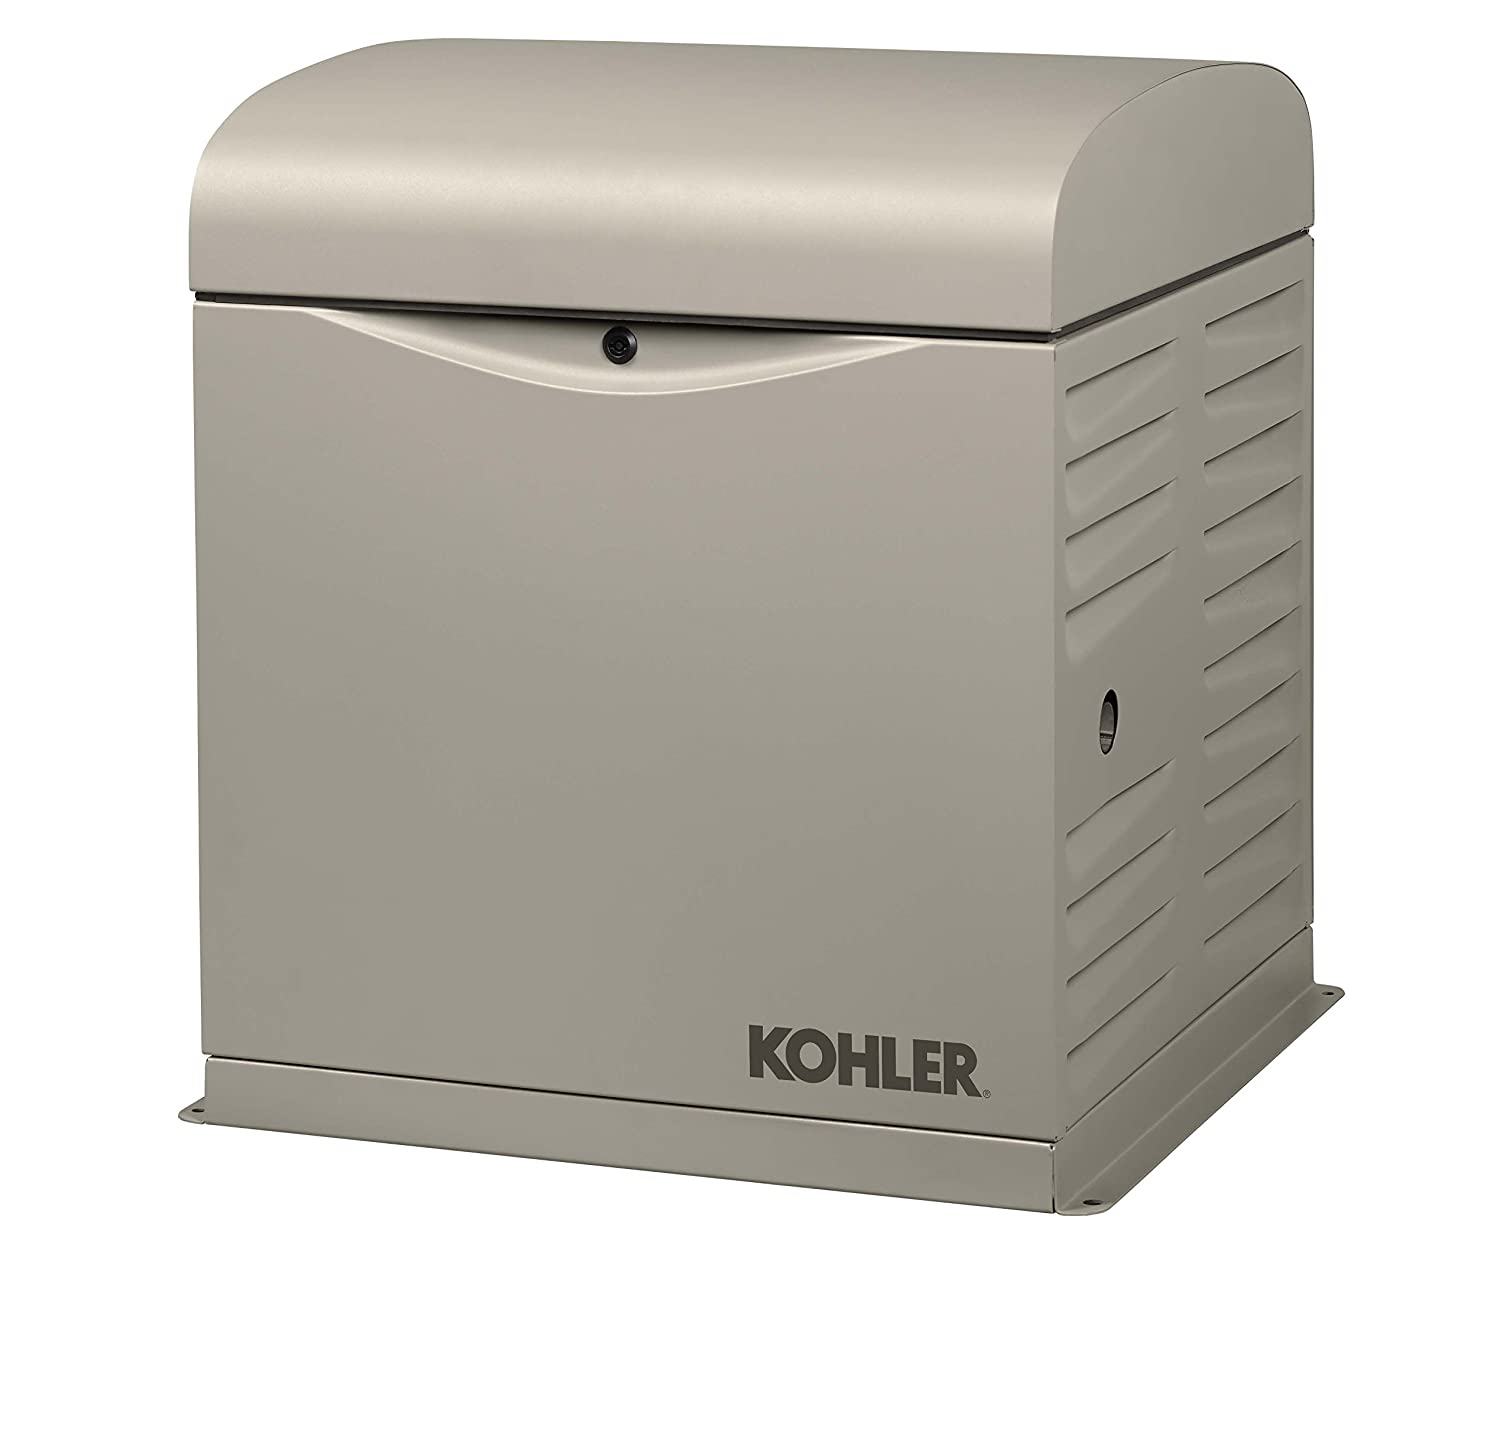 Amazon KOHLER Generators 12RESVL100 Amp Standby Indoor